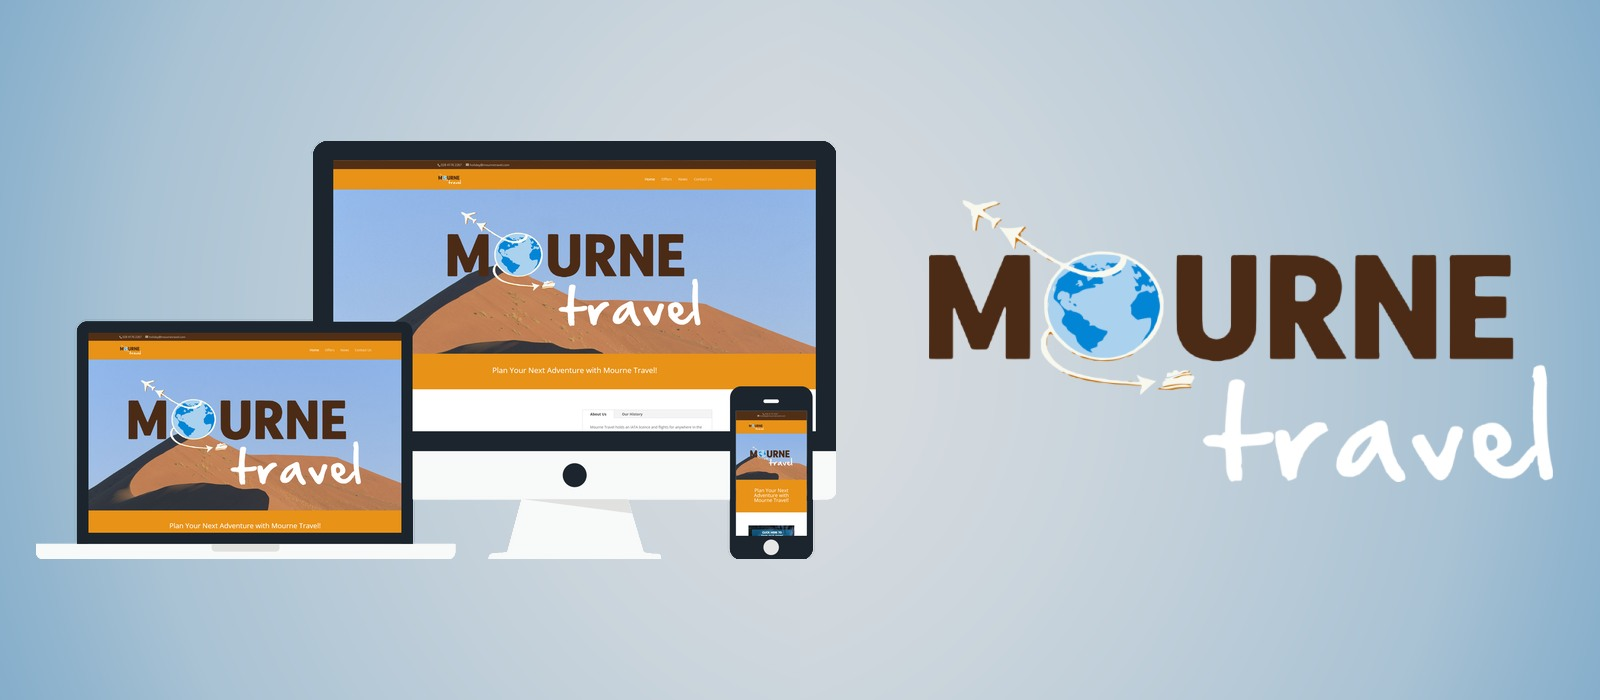 Mourne Travel Featured Image